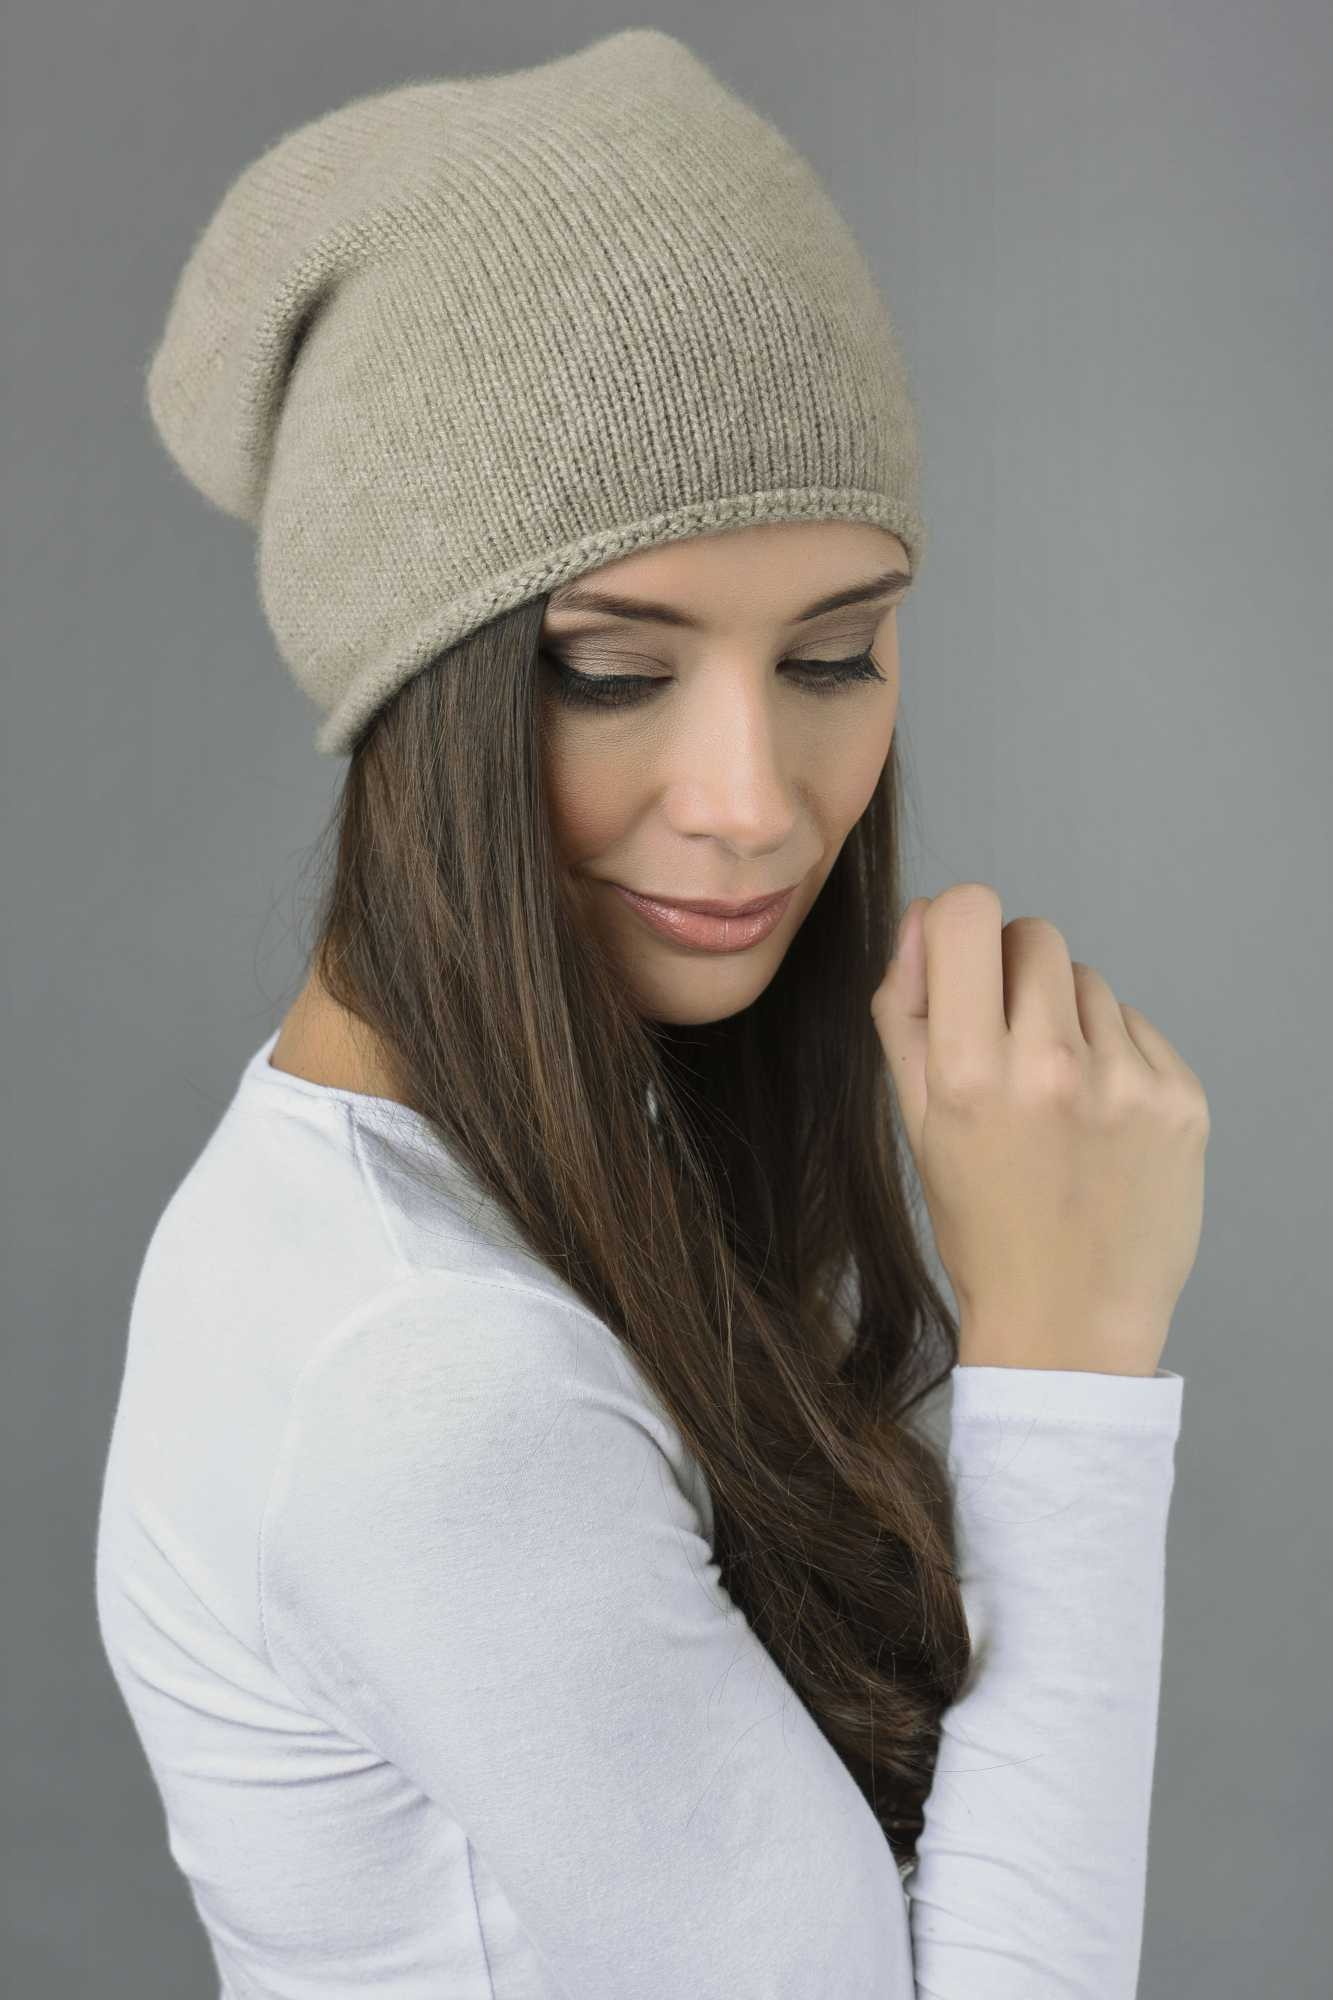 Pure Cashmere Plain Knitted Slouchy Beanie Hat In Camel